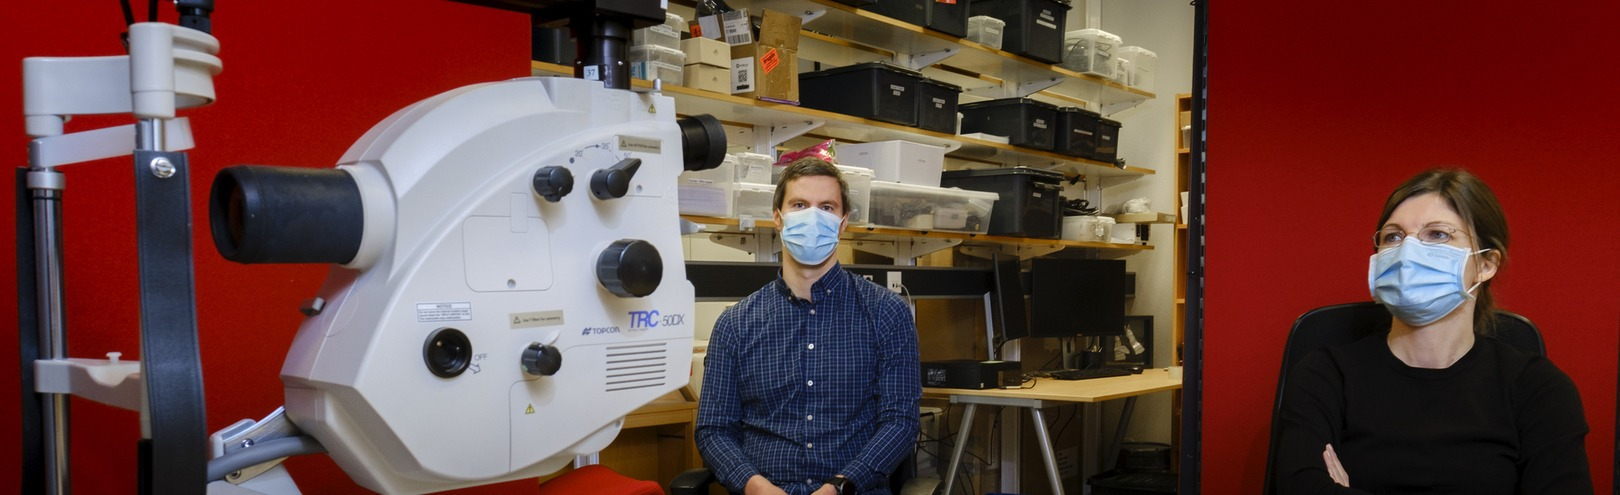 Could eye measurements help diagnose Alzheimer's? - Available at University of Iceland